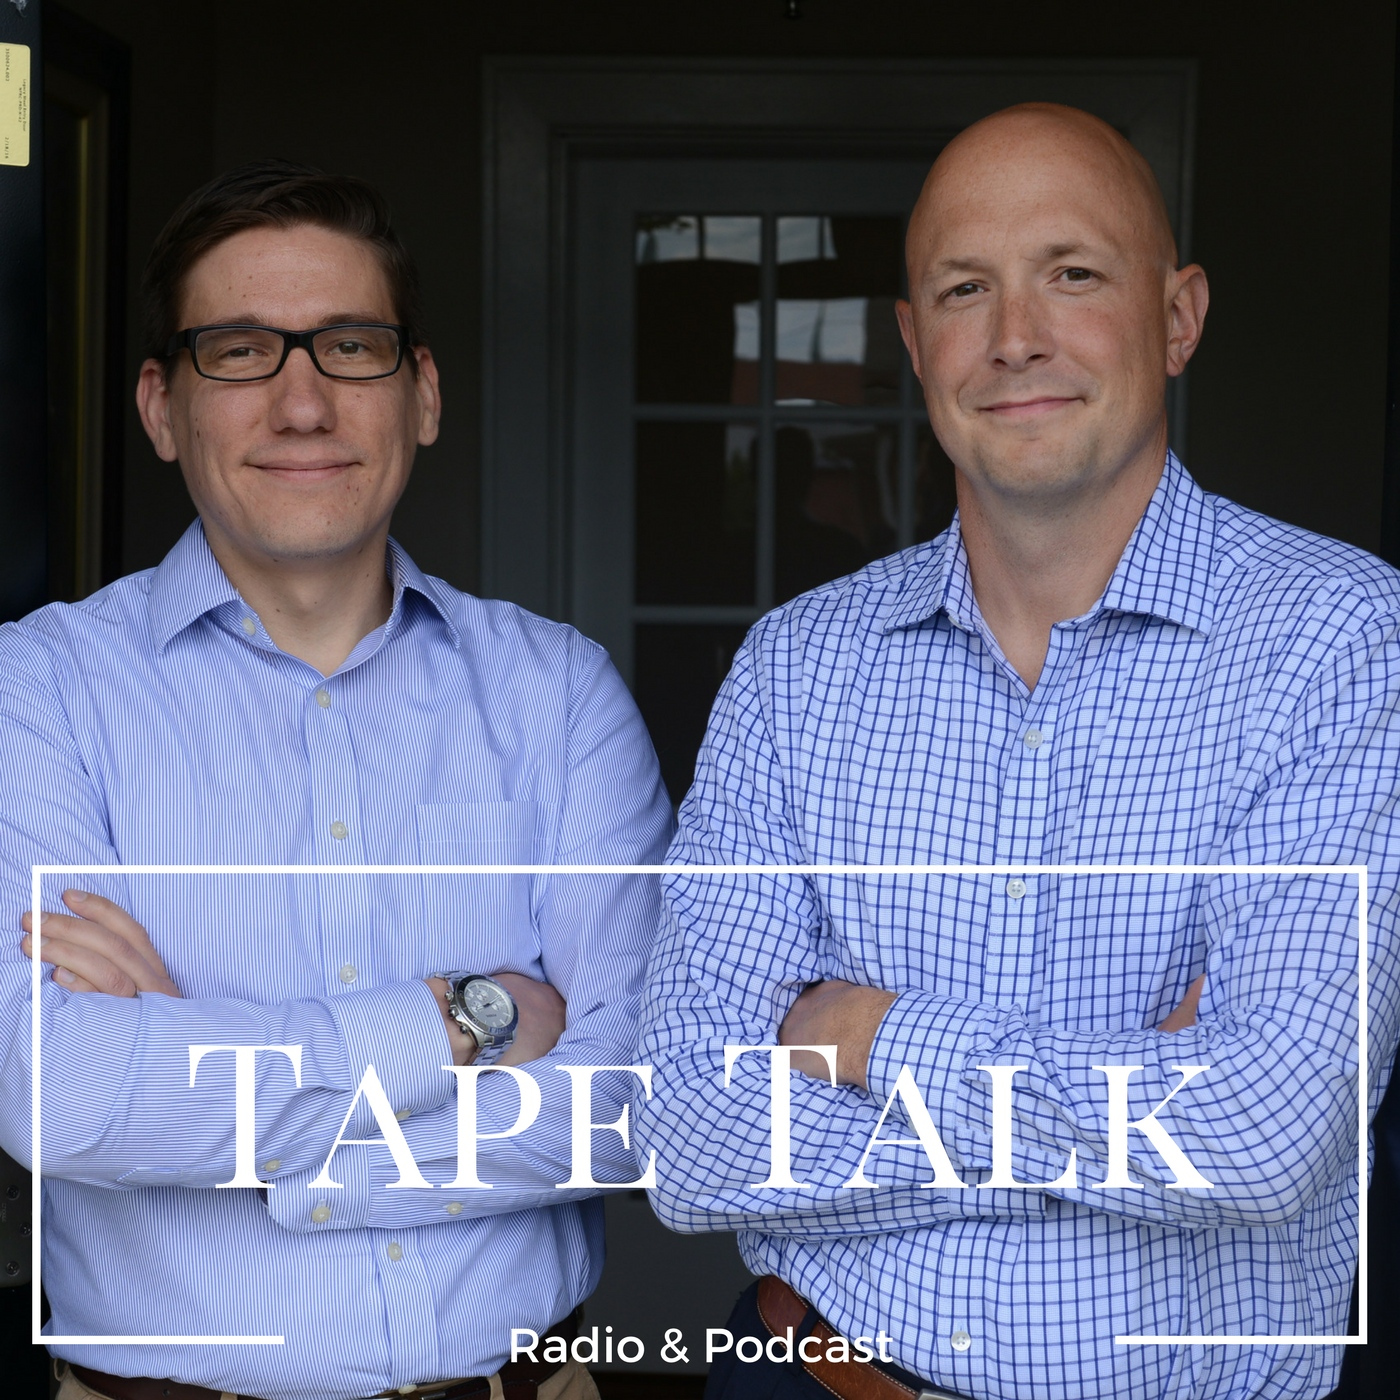 Tape Talk Radio